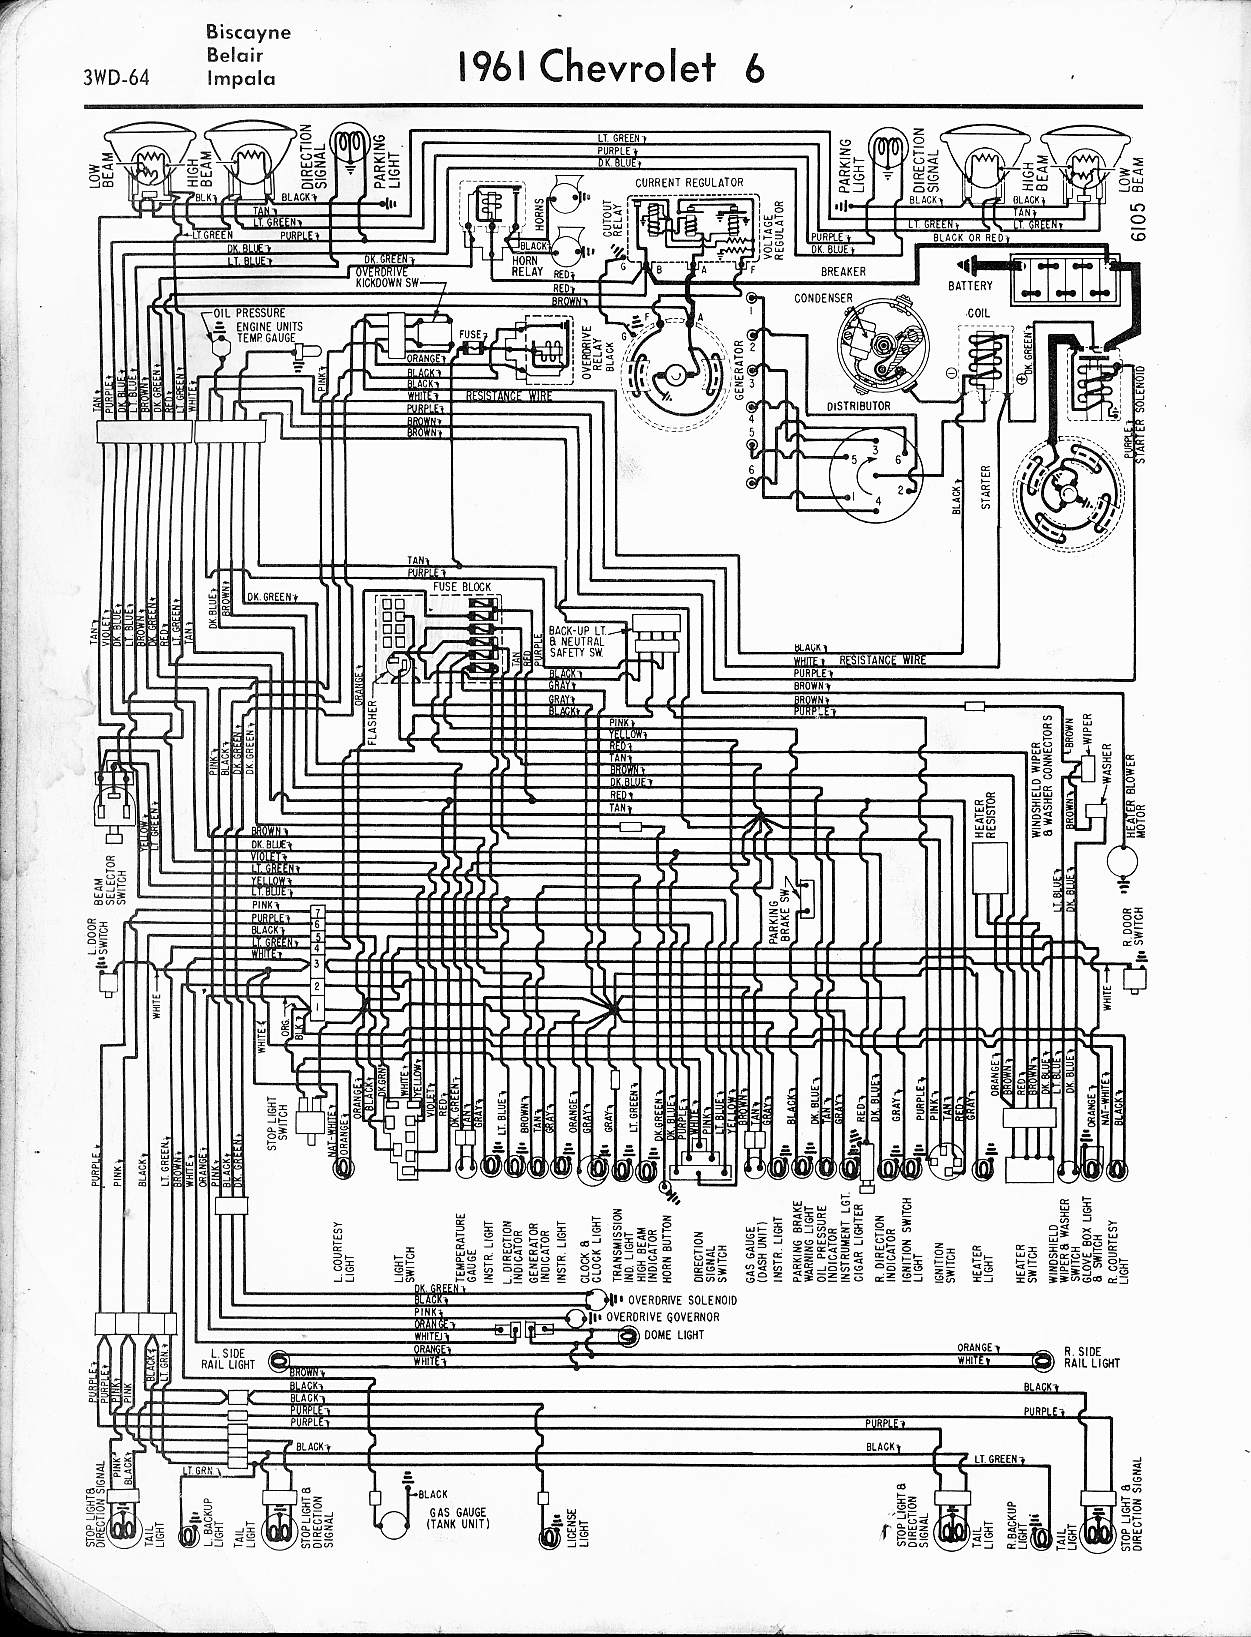 hight resolution of impala wiring schematic wiring schematic diagram 16 peg kassel de 1964 chevy impala fuse box